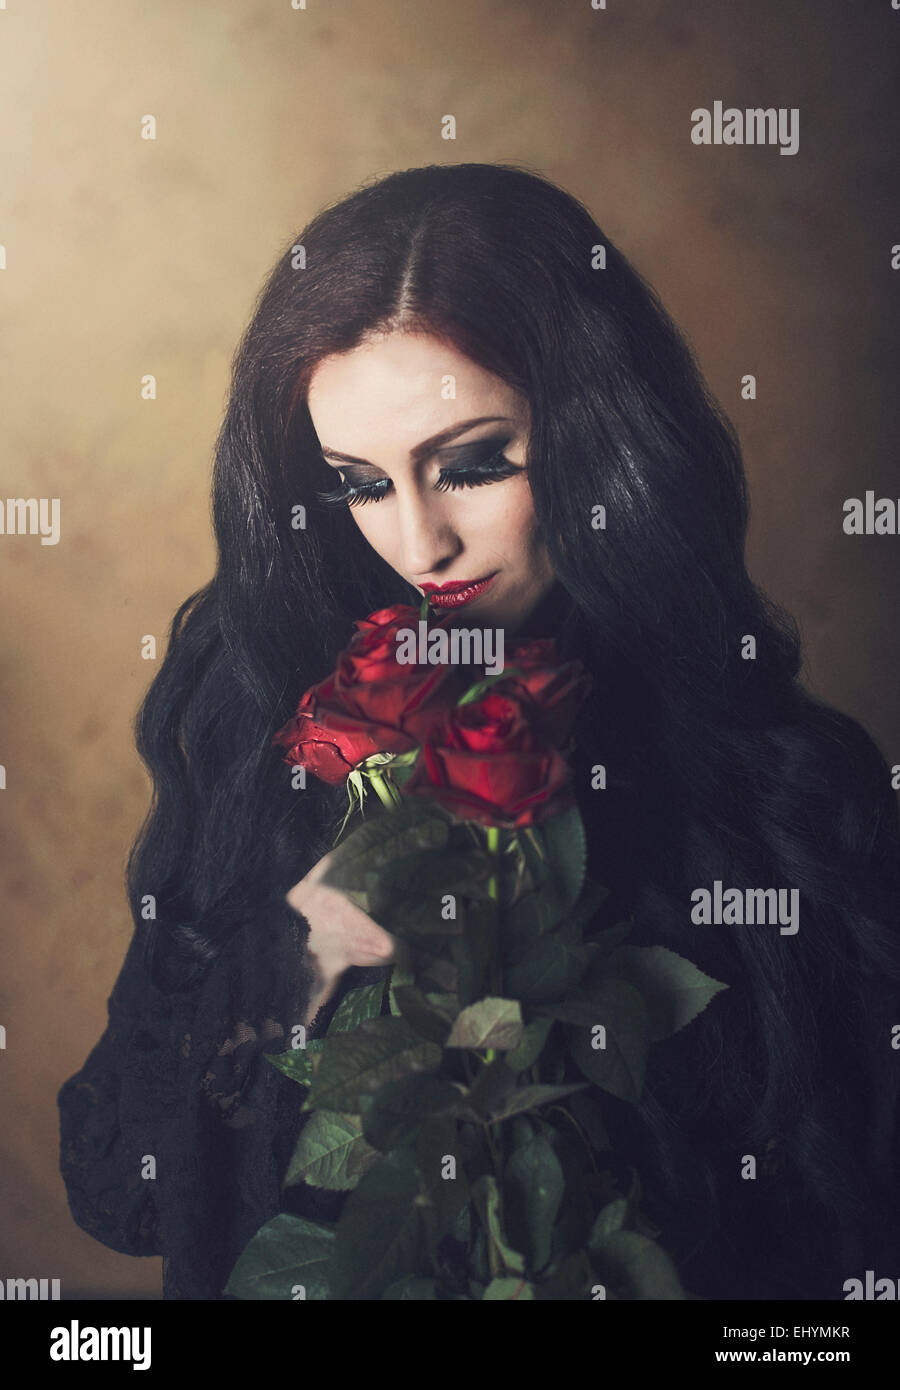 Portrait of a woman in black holding bunch of red roses - Stock Image